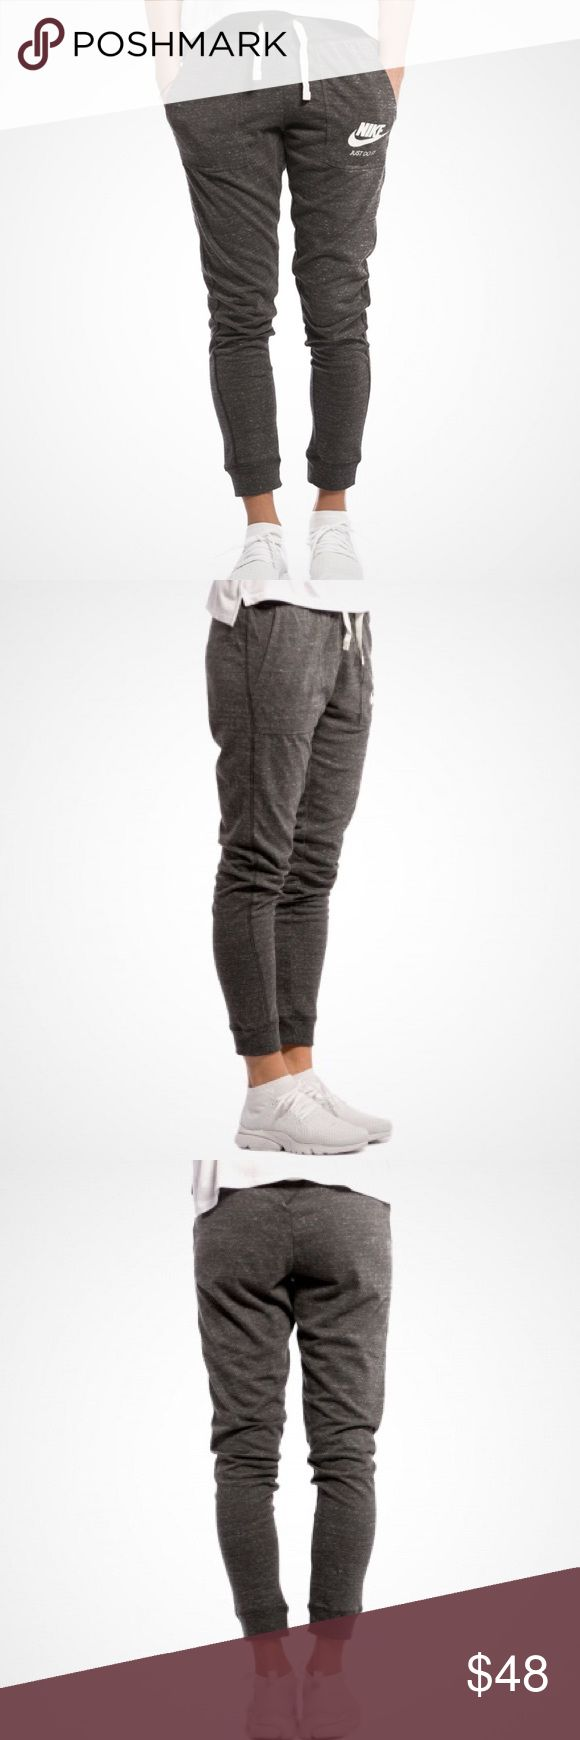 """Nike Grey Gym Vintage Jogger Pants •The Nike Sportswear Gym Vintage Women's Joggers are made for all-day comfort and a fit that moves with you. Blended cotton fabric has a super-soft, lightweight feel. 60% cotton/40% recycled polyester.  •Size XS, true to size. Inseam approx 28.5"""".  •New with tag.  •NO TRADES/HOLDS/PAYPAL/MERC/VINTED/NONSENSE. Nike Pants Track Pants & Joggers"""